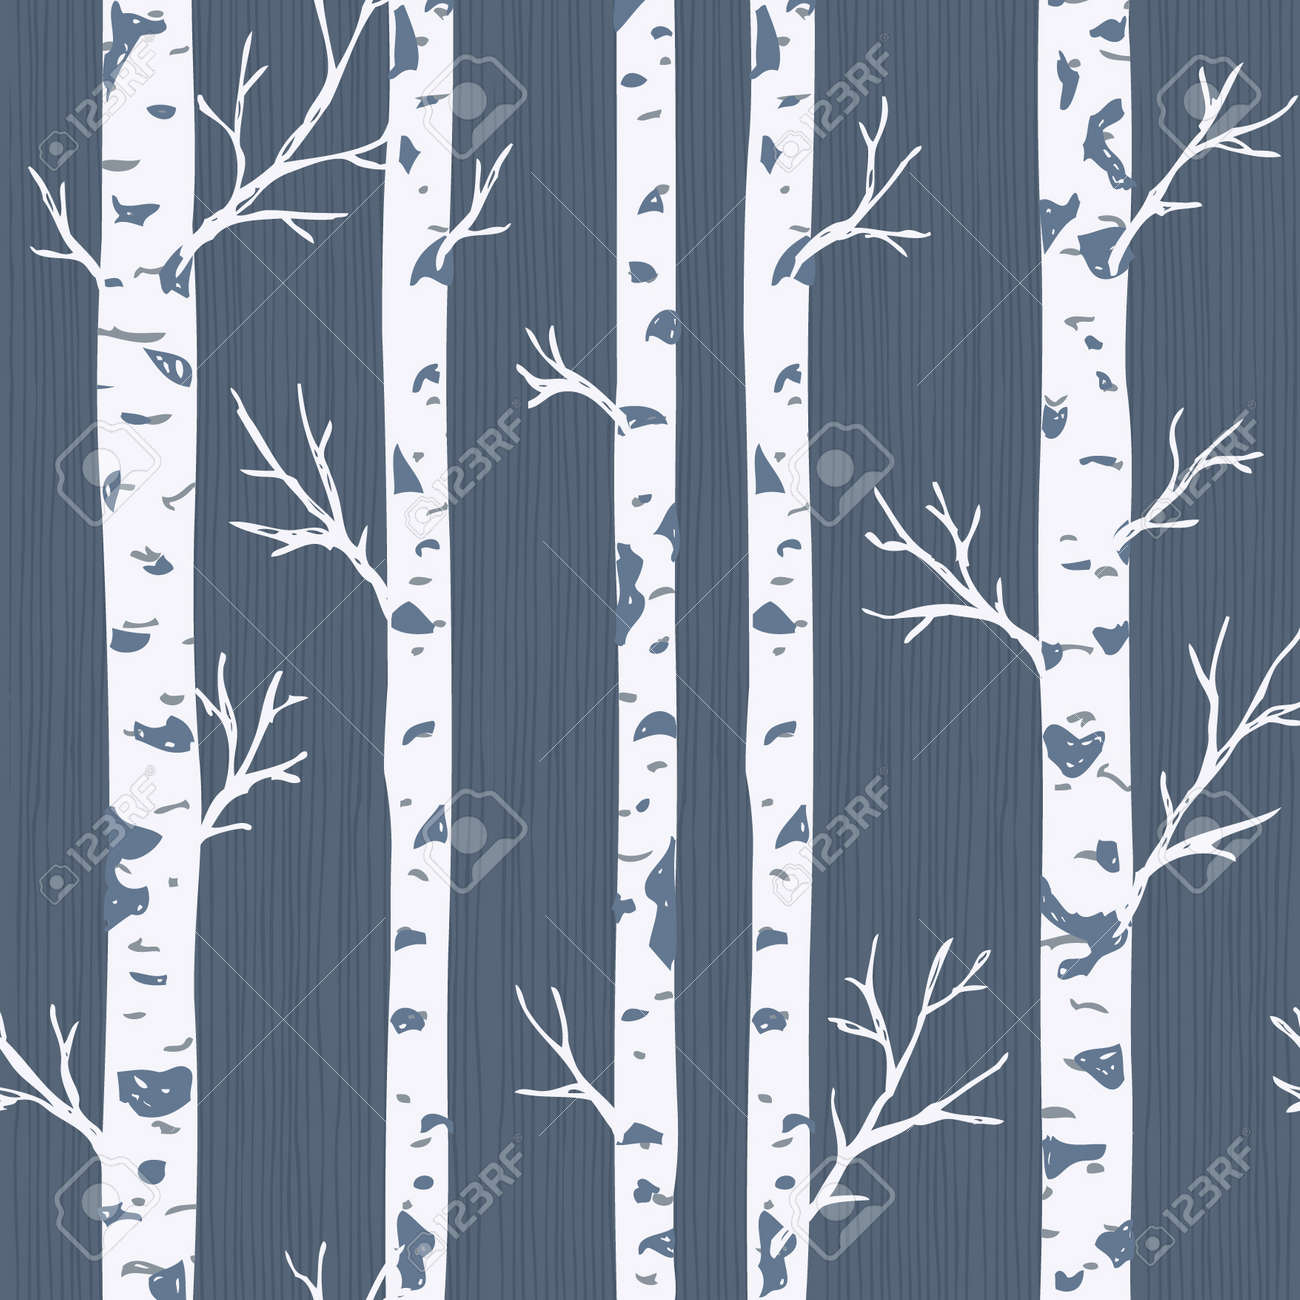 Birch trees seamless pattern. Spring forest background. Vector illustration - 106382730